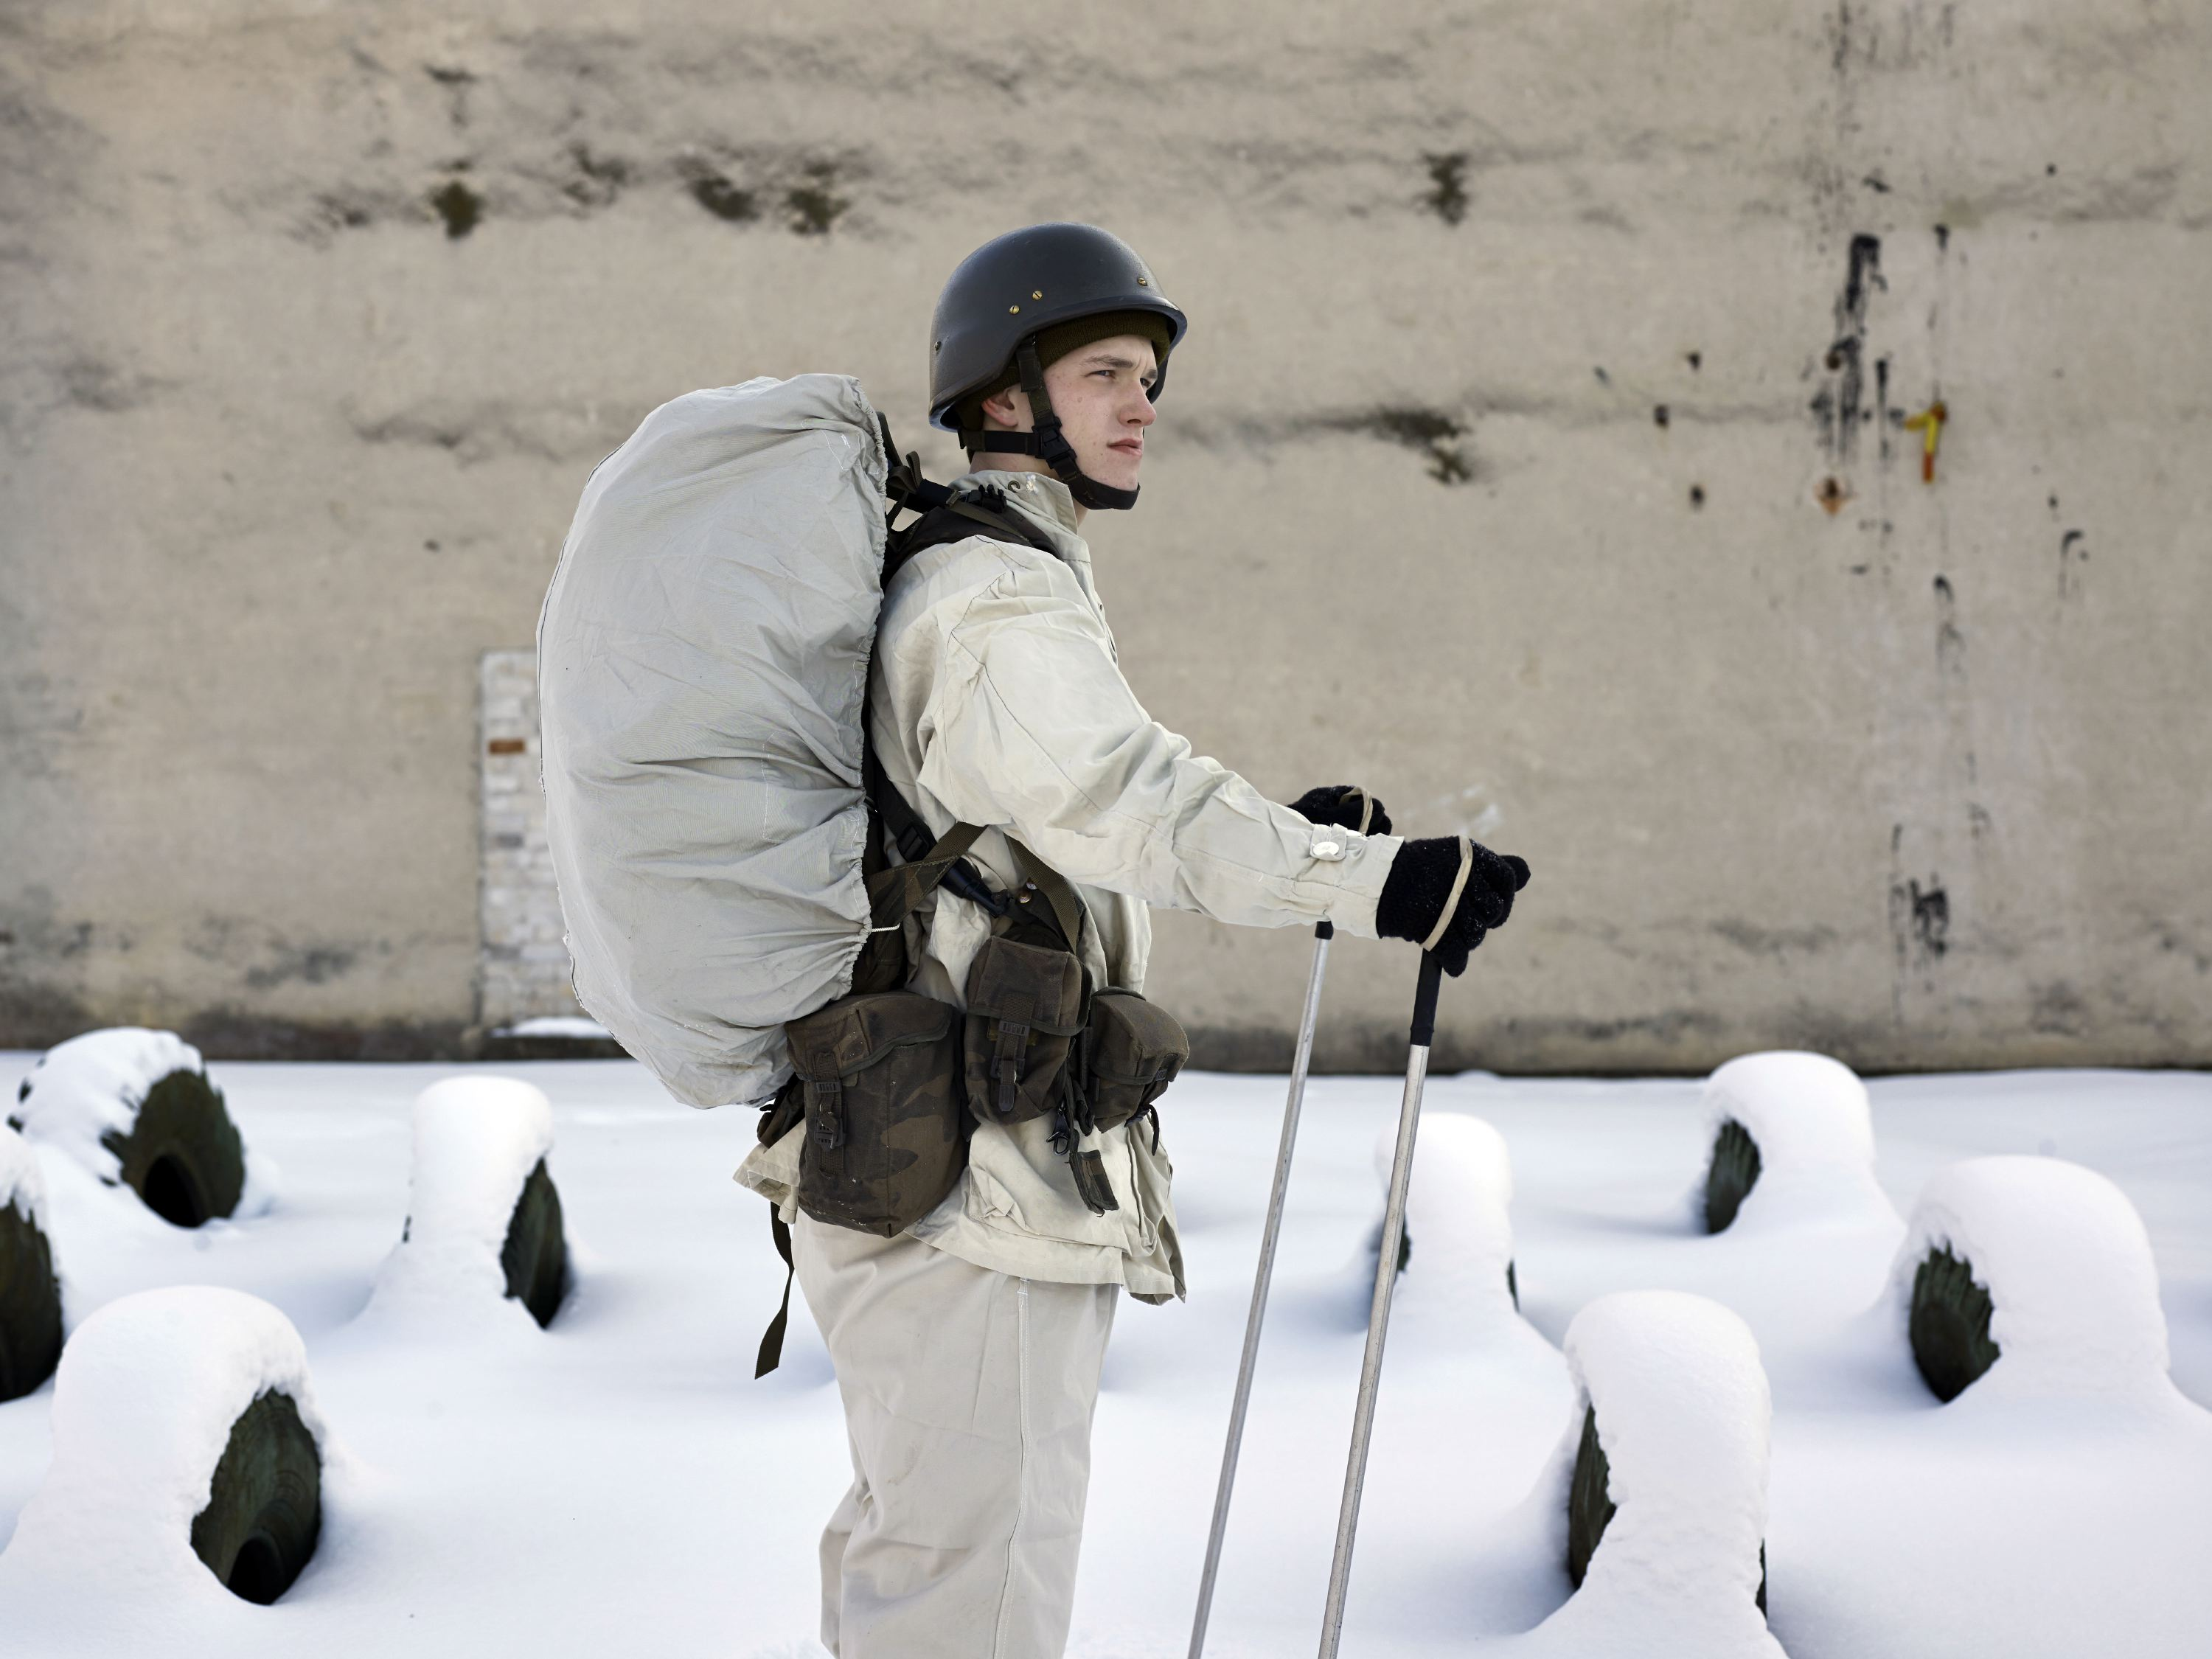 A cadet during training at The General Jonas Zemaitis Military Academy of Lithuania, Vilnius, Lithuania, Feb. 9, 2012.